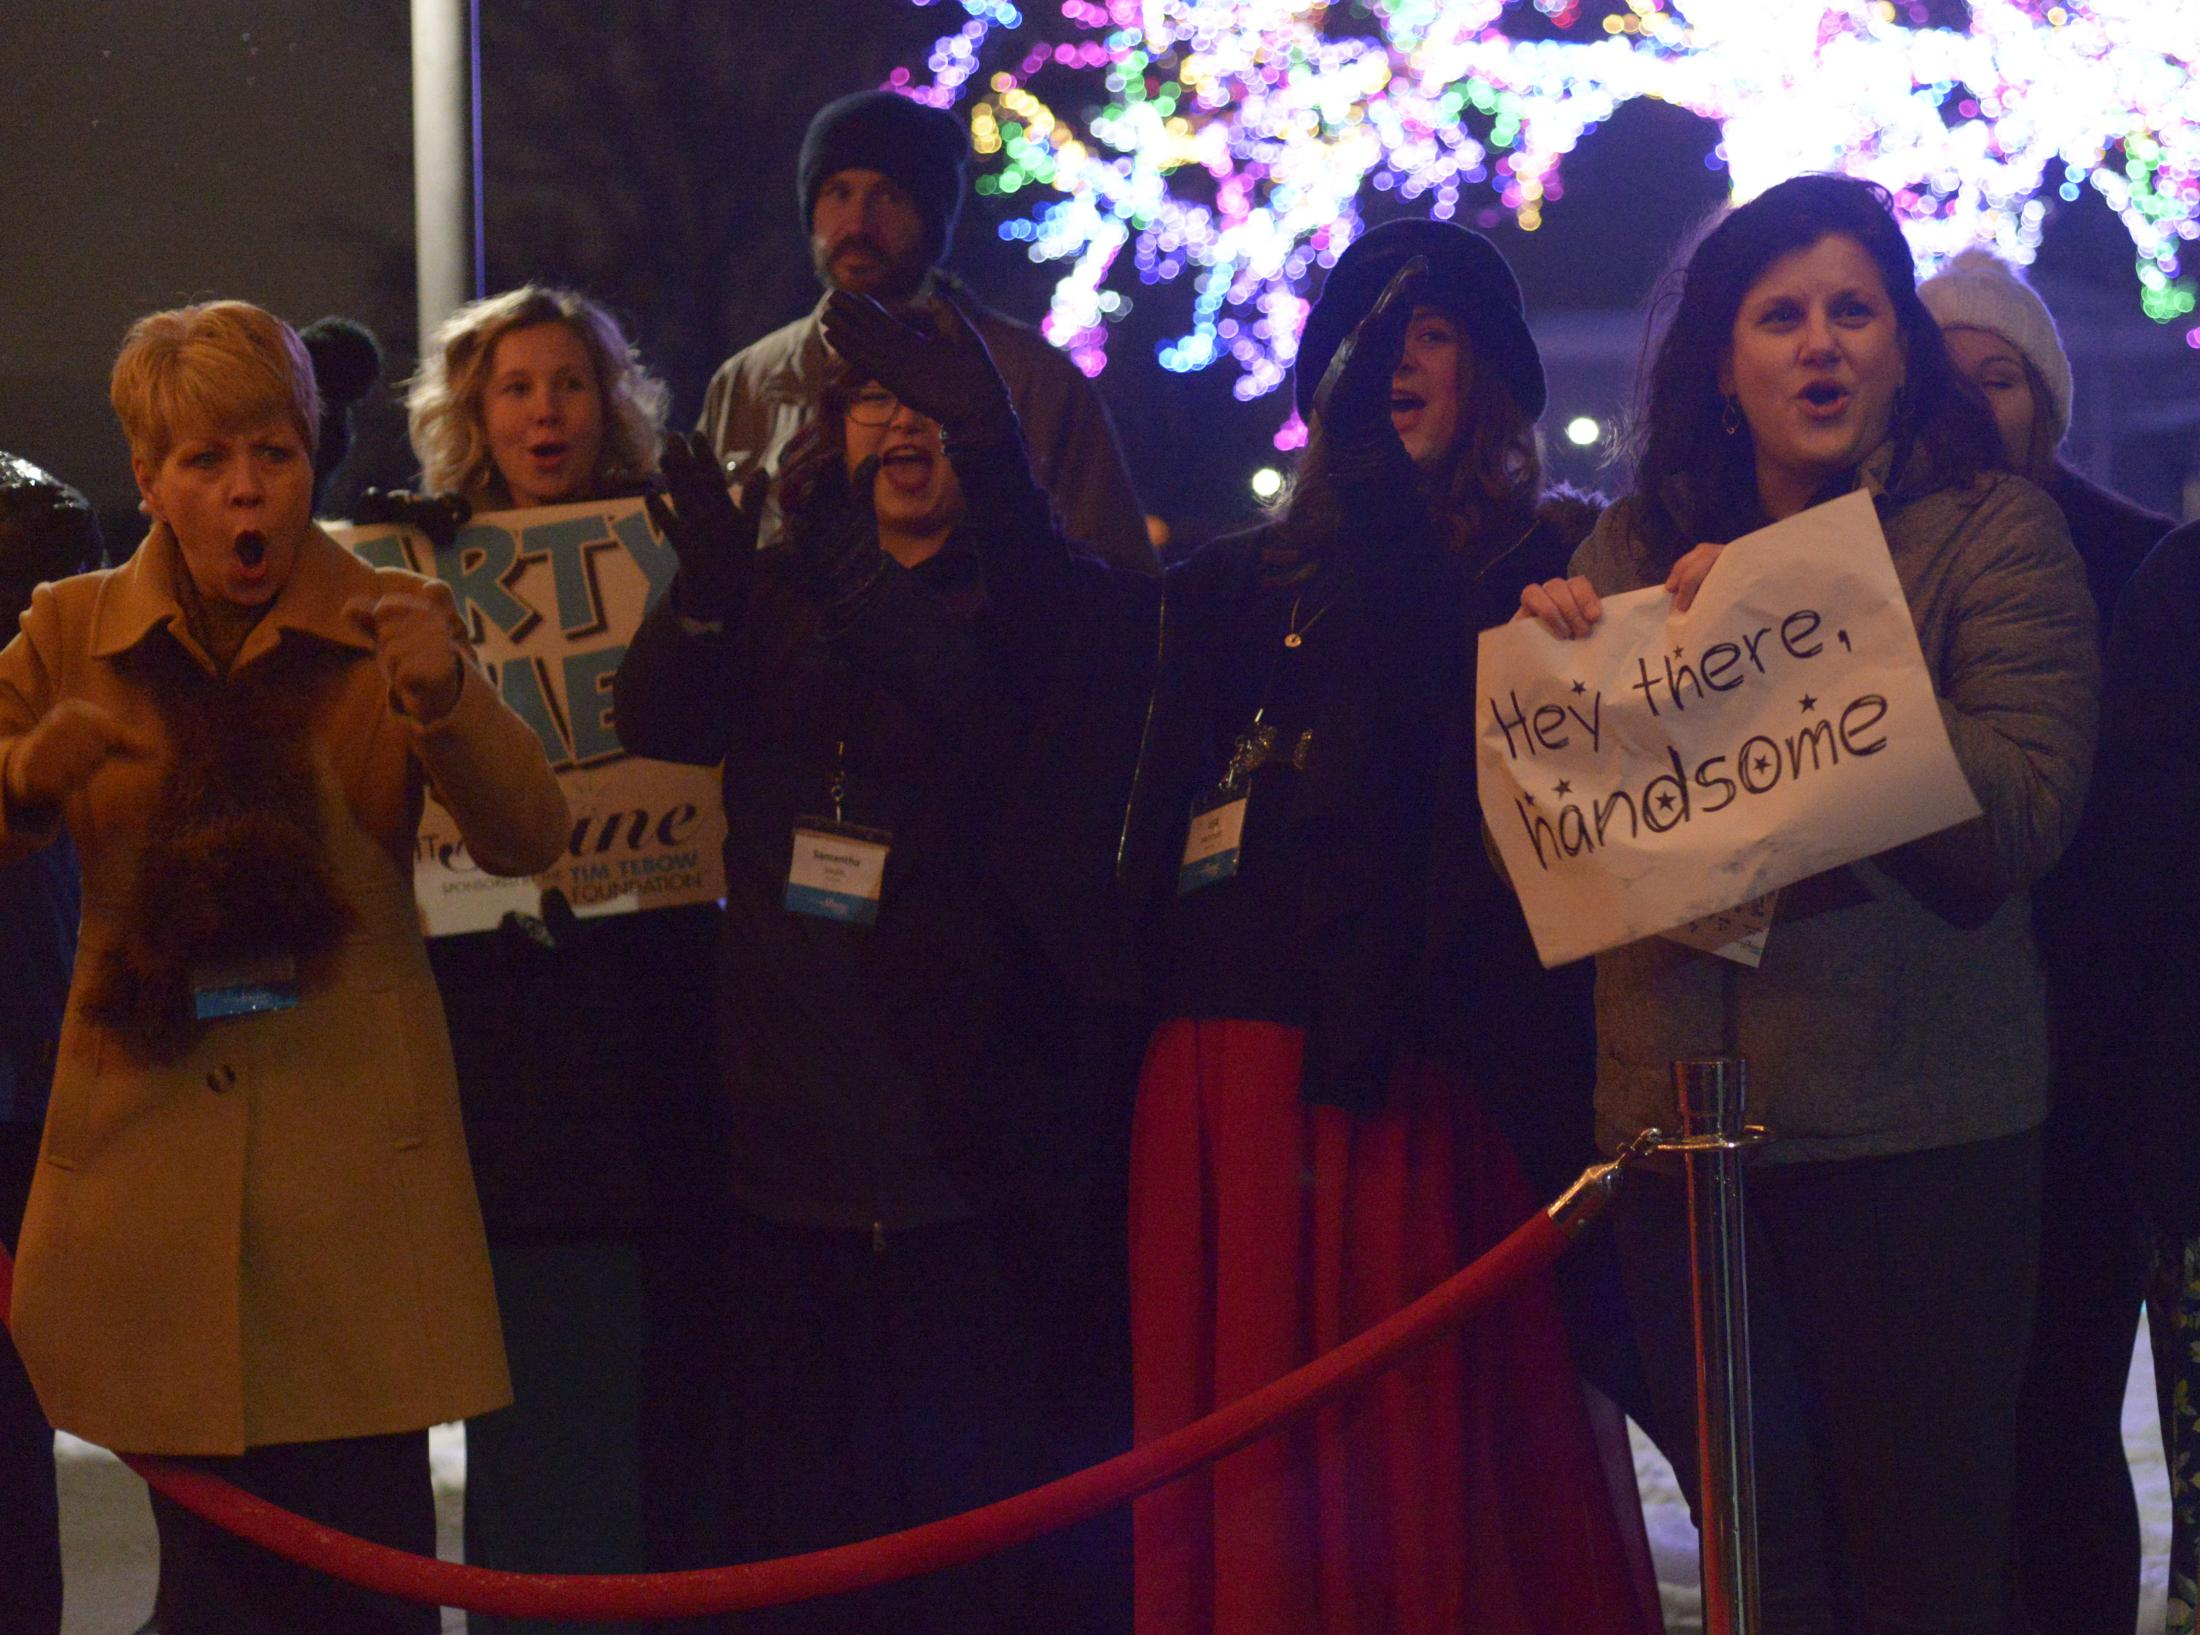 """A crowd cheers for the guests as they arrive at the red carpet Friday, Feb. 7 at the Night to Shine dance at The Crossing in Columbia. """"This night is for them,"""" paparazzi member Tricia Tonnies said. """"We want to make sure they feel as celebrated and special as they truly are."""""""